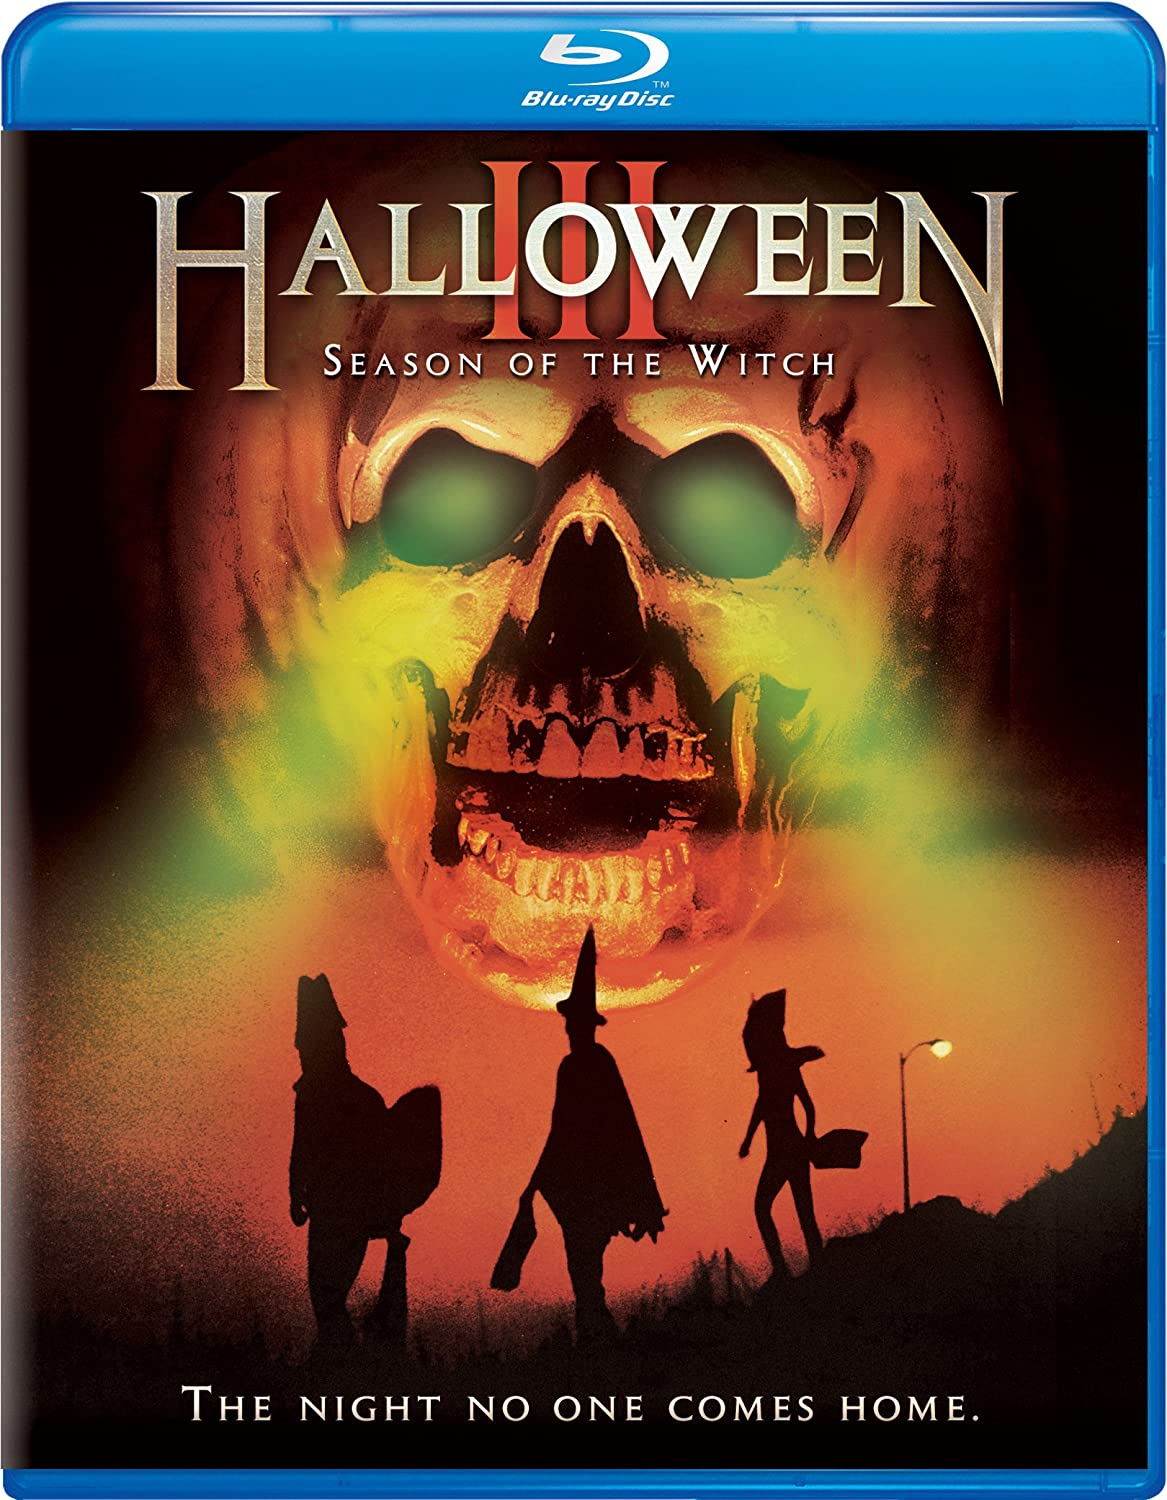 amazoncom halloween iii season of the witch blu ray tom atkins stacy nelkin dan oherlihy michael currie tommy lee wallace debra hill - Halloween Iii Full Movie